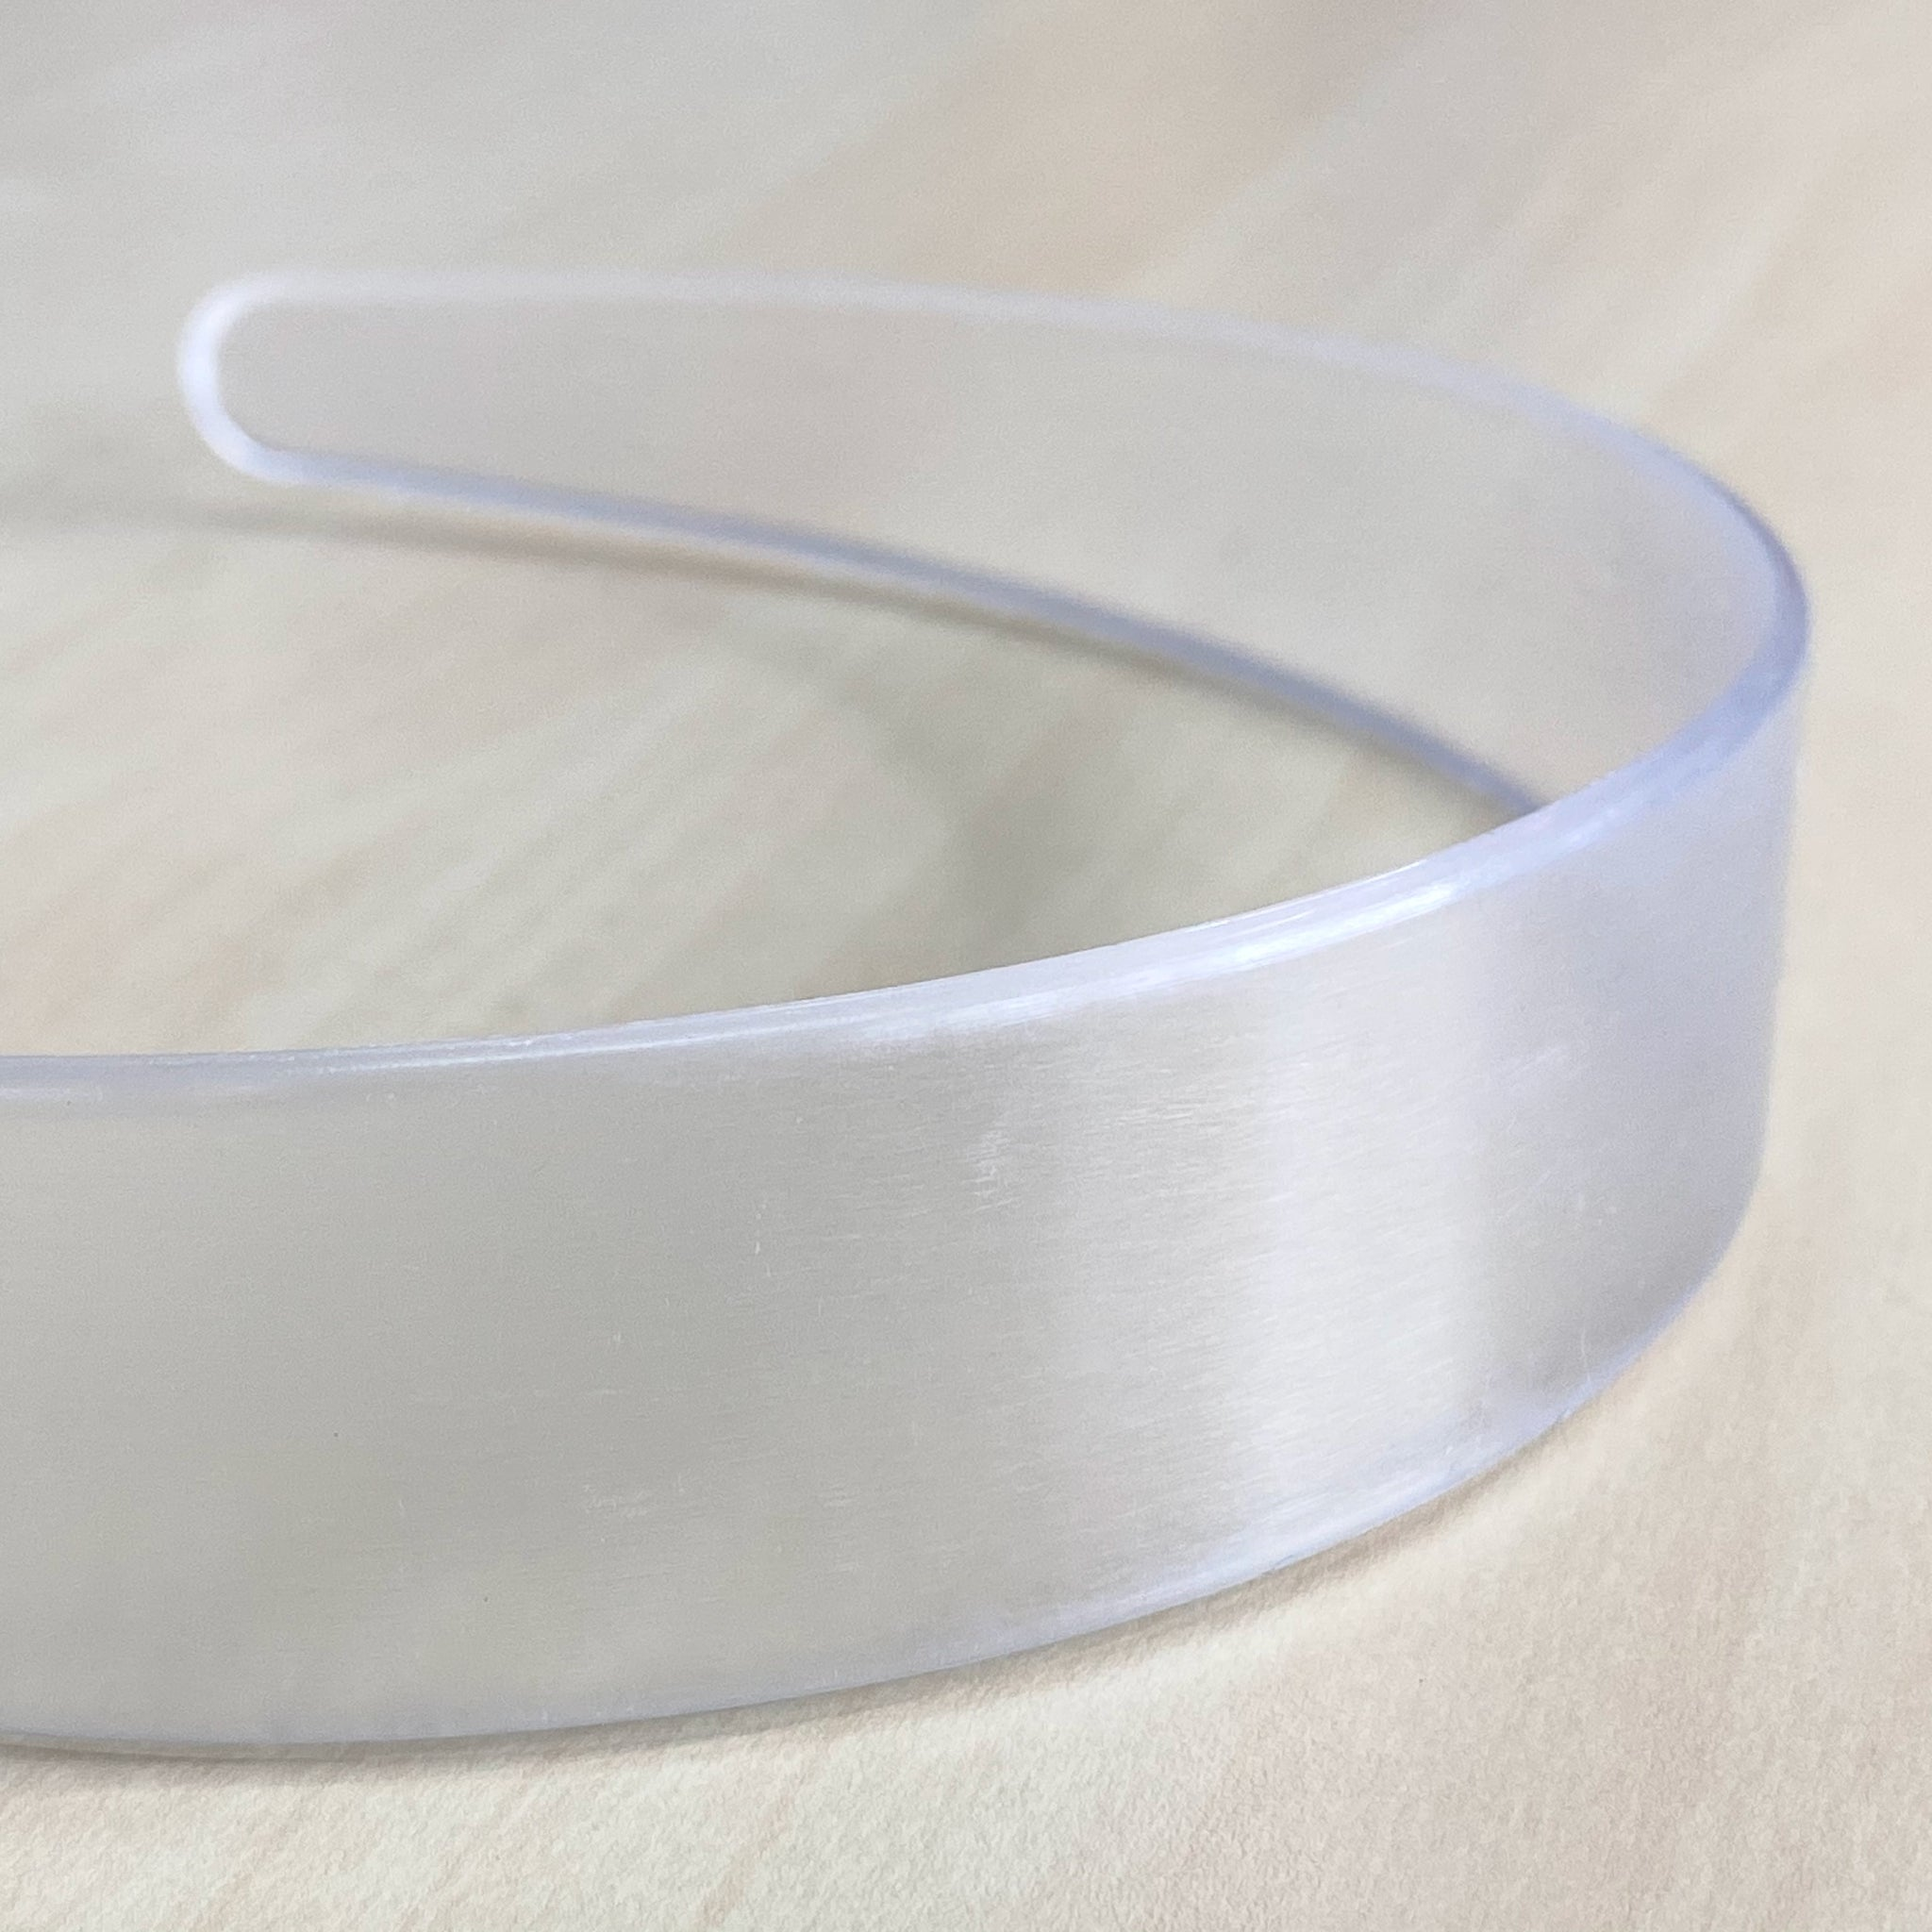 1-inch Clear Plastic Headband (6-Pack)